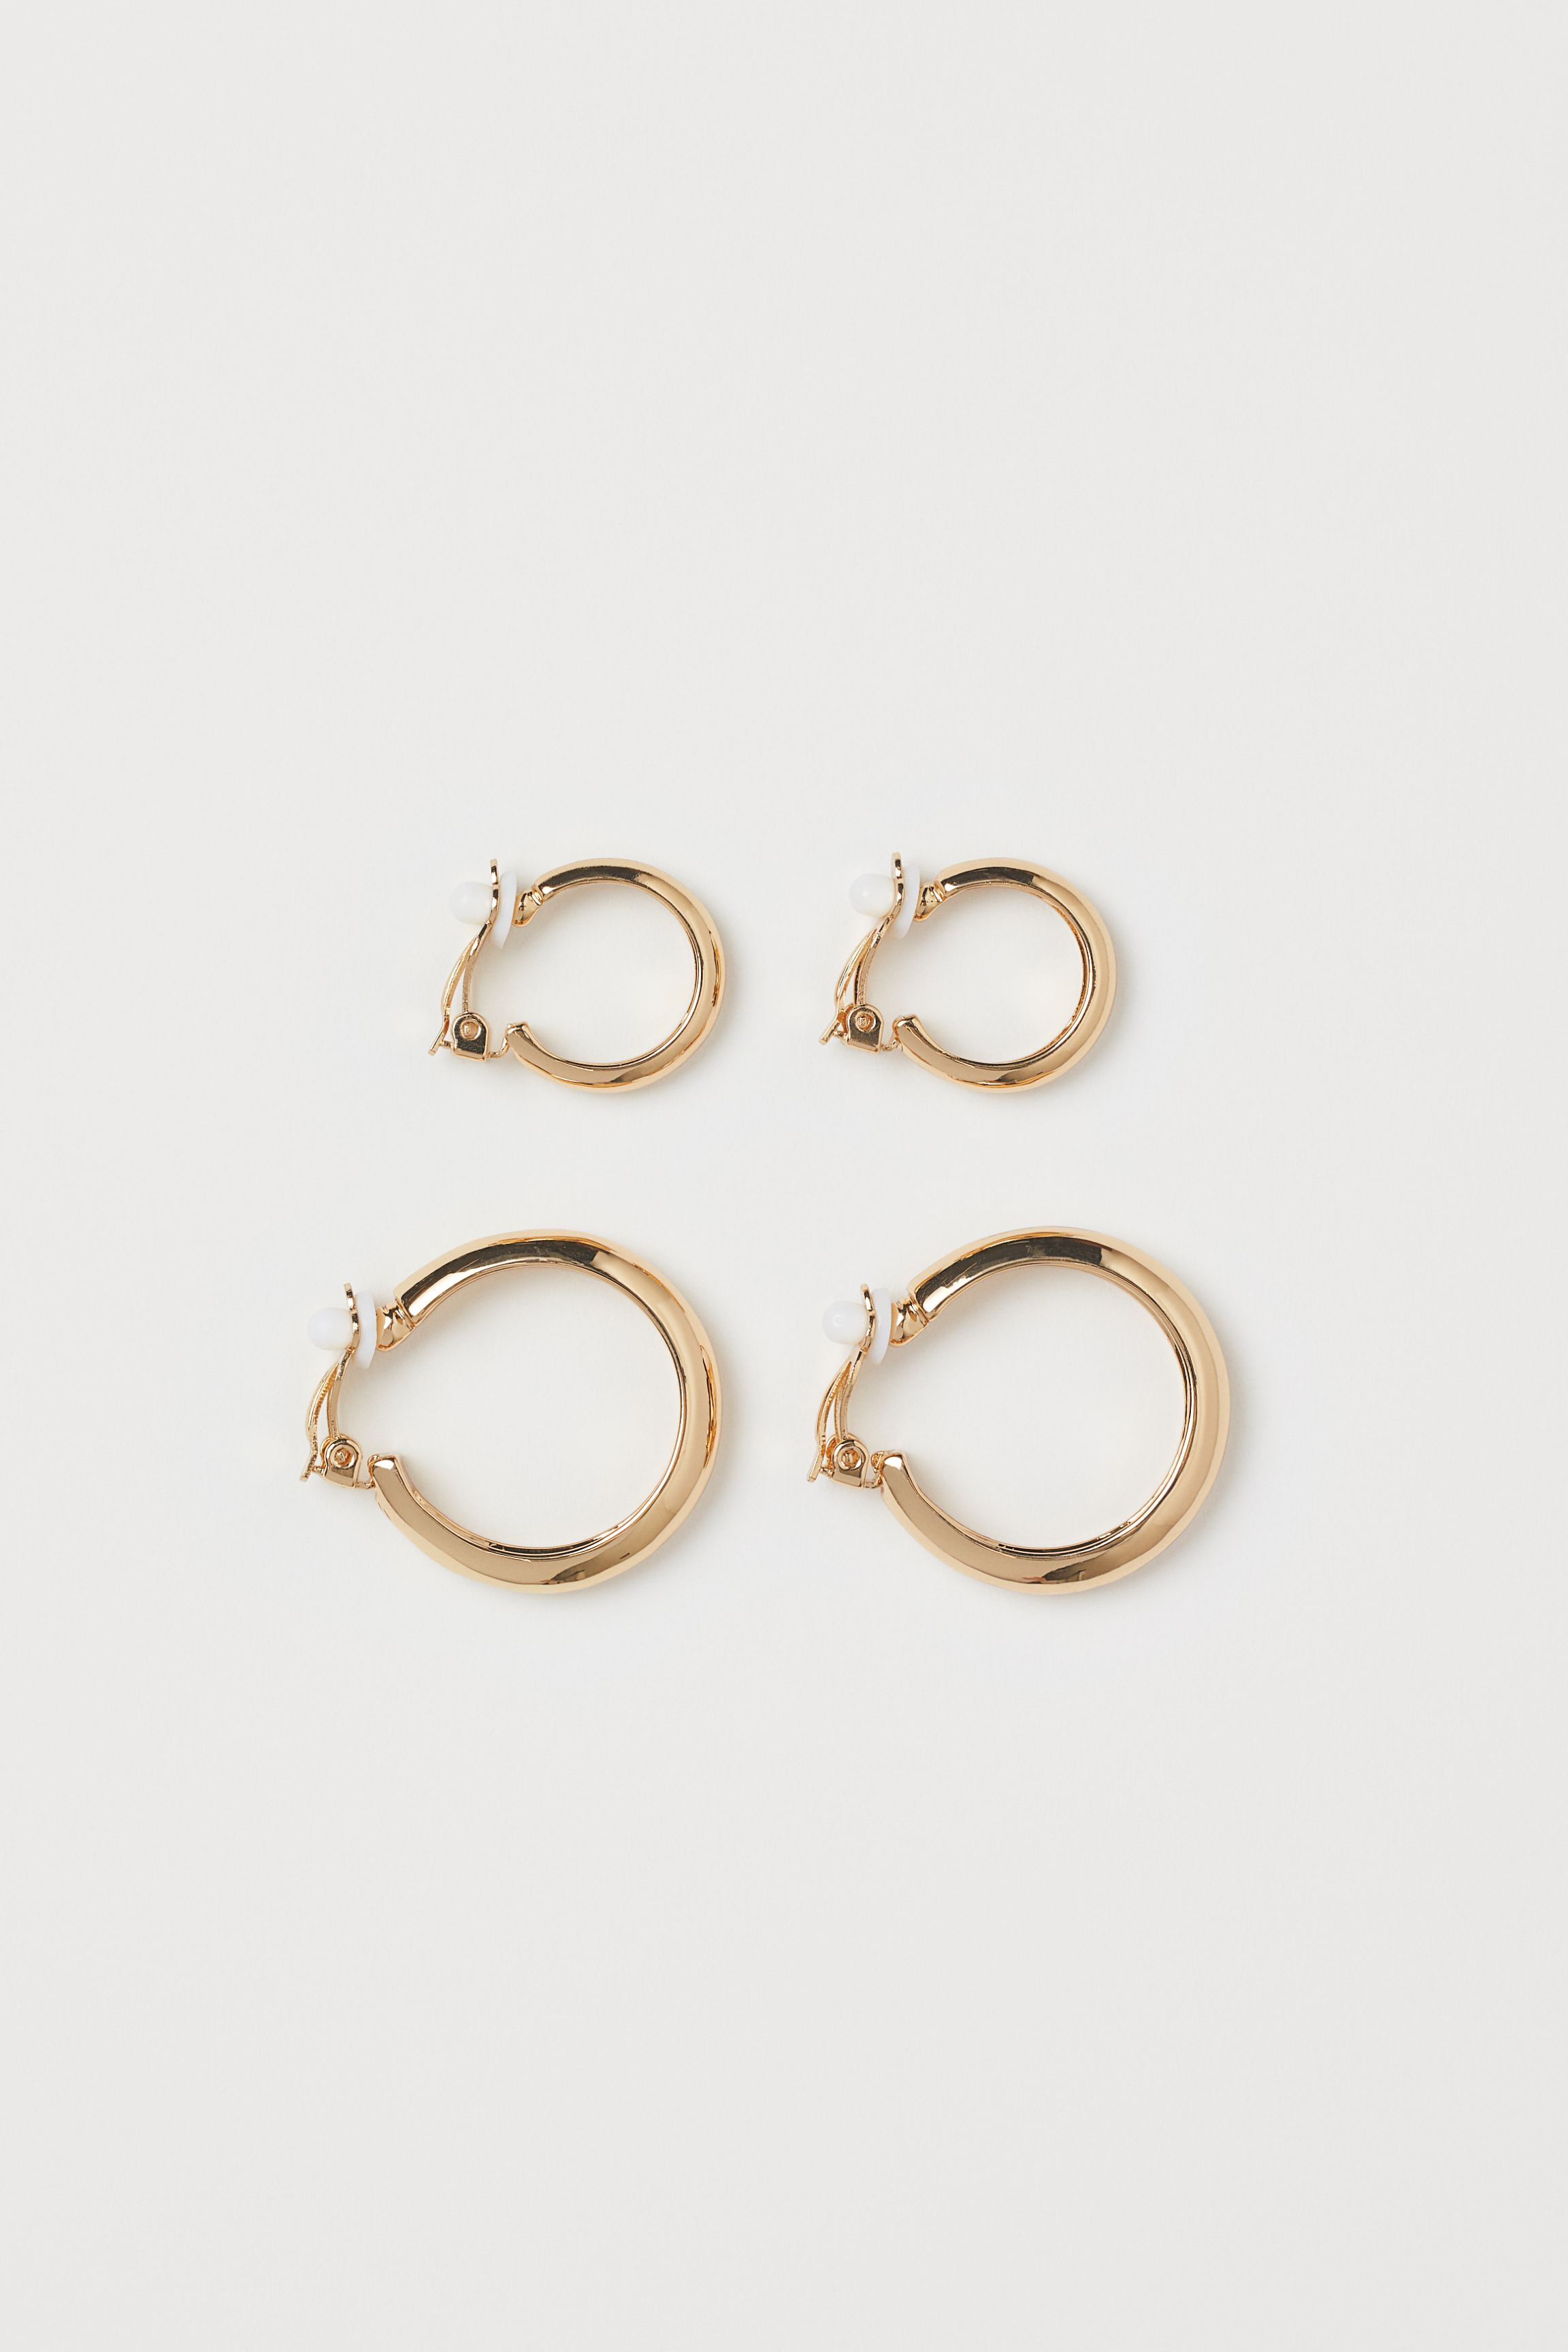 Two Pairs Clip Earrings